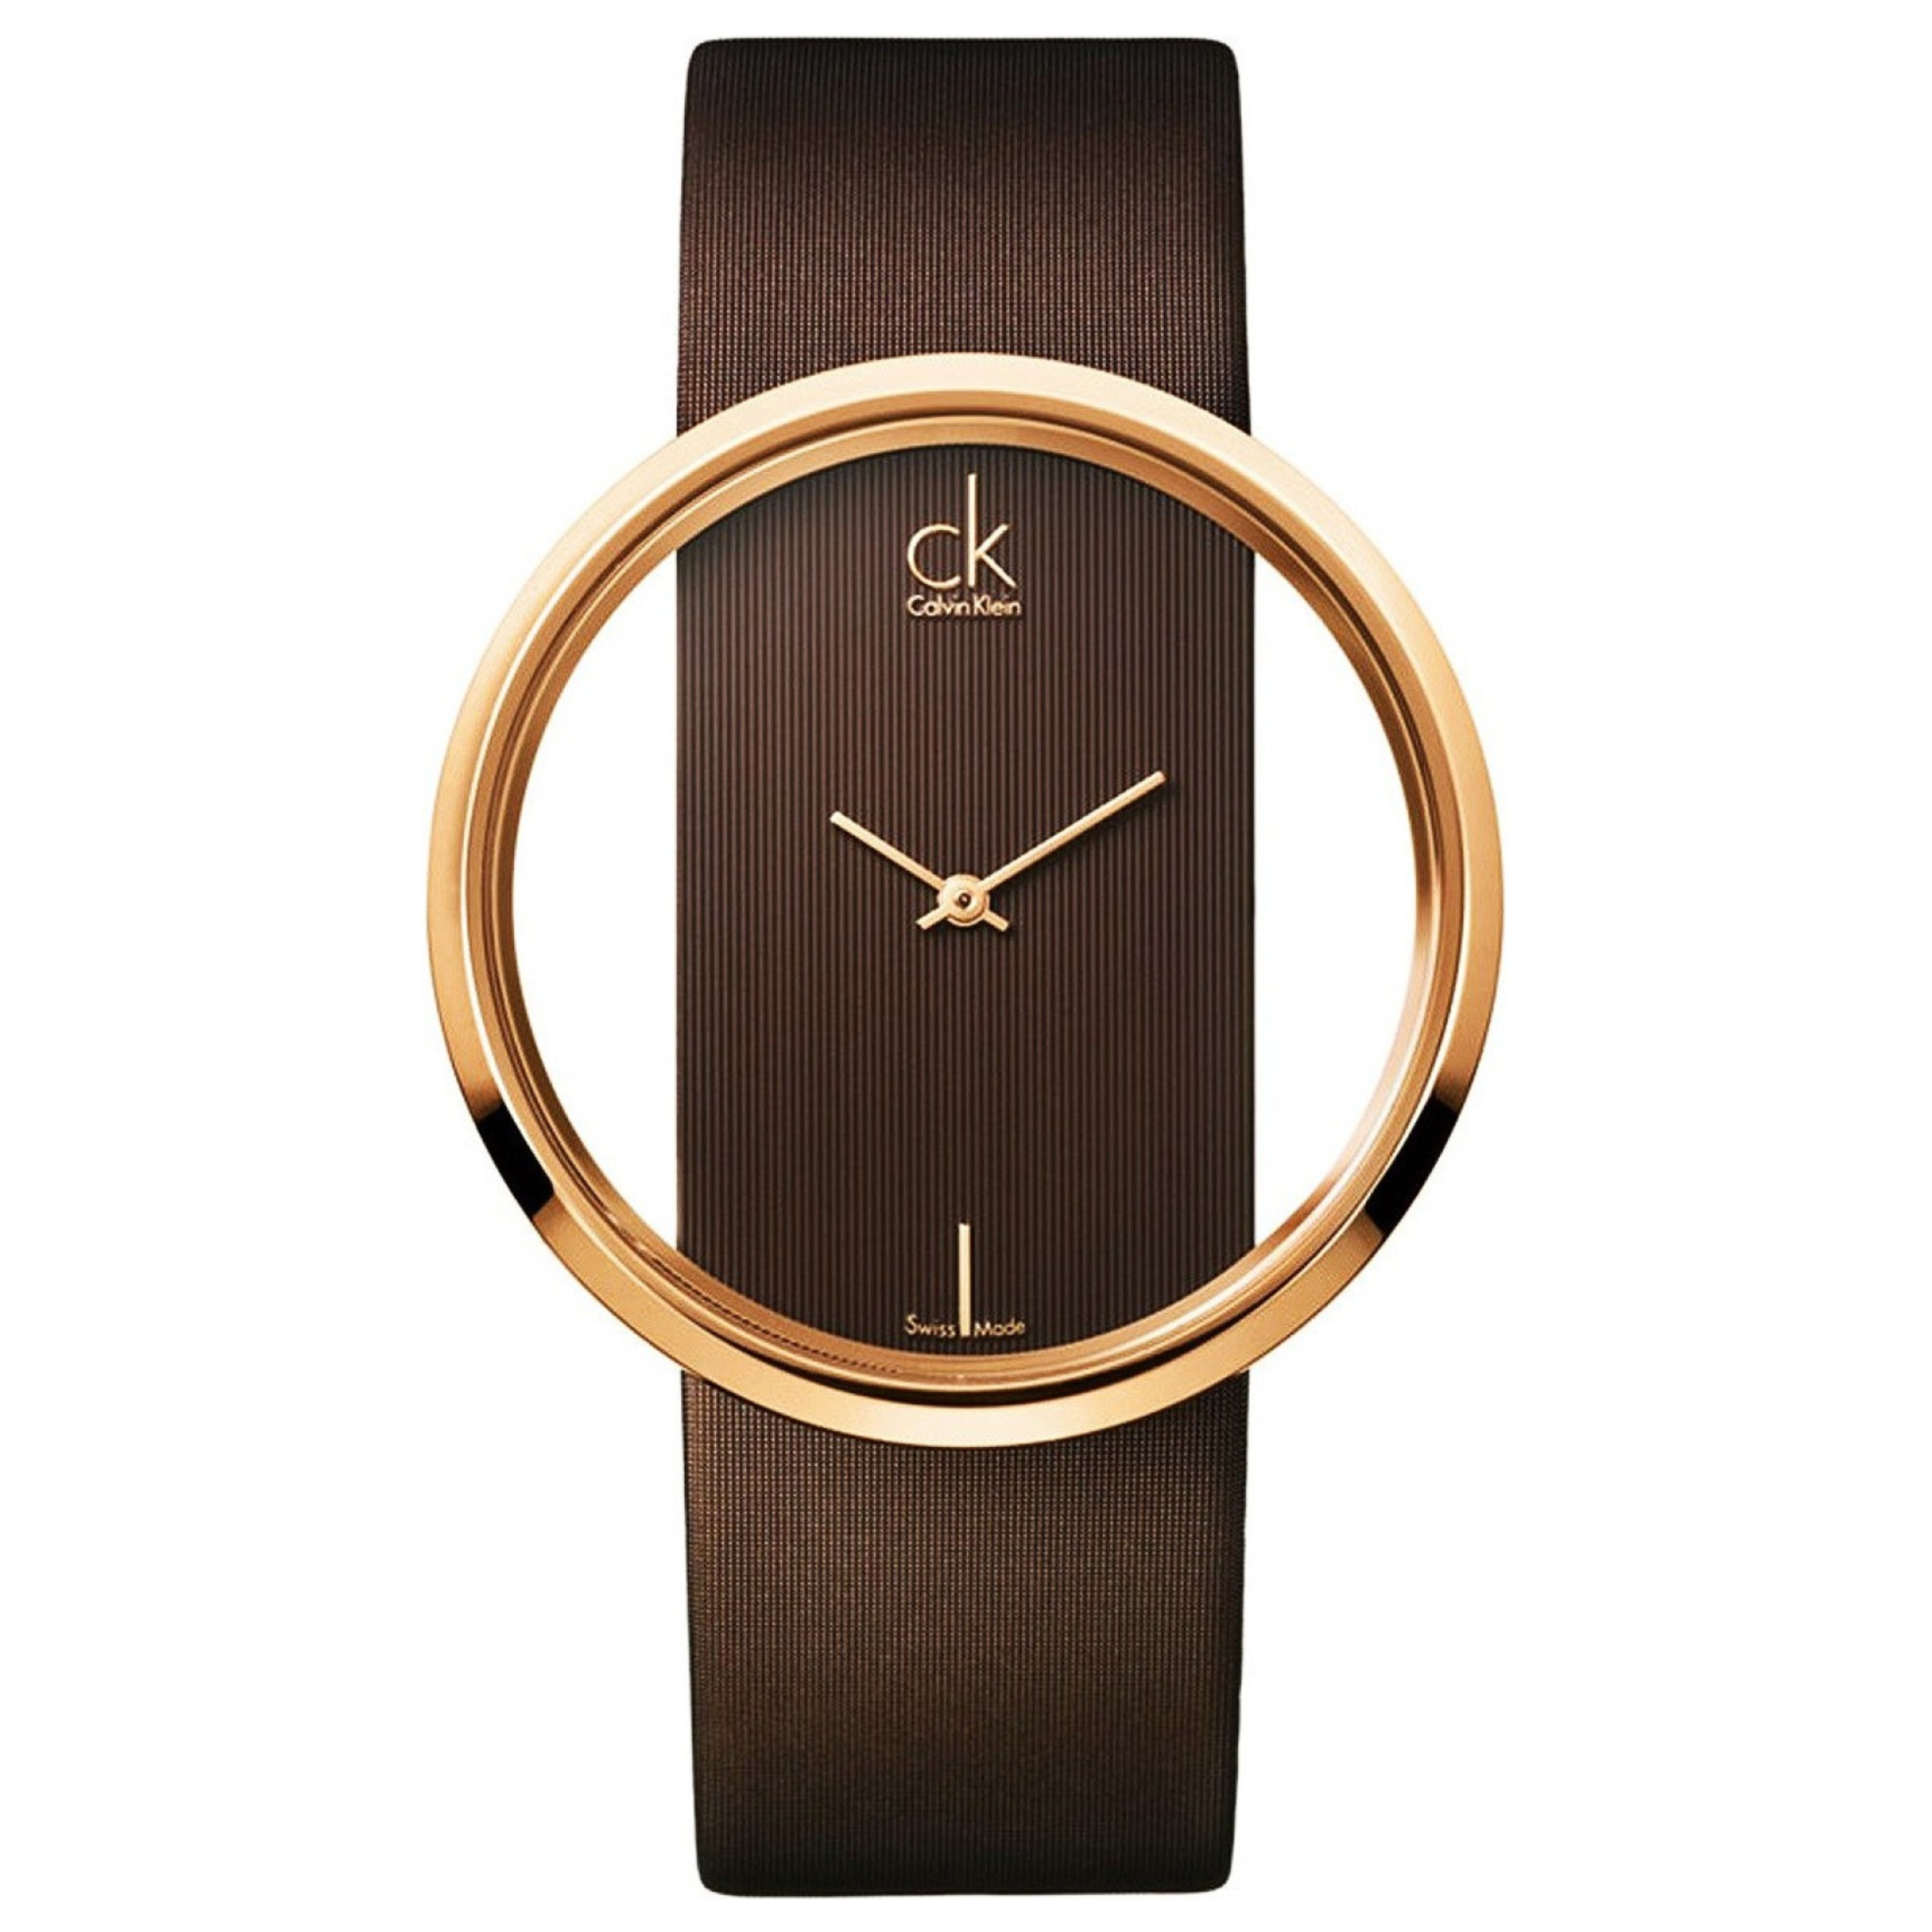 Calvin Klein Glam Ladies Watch K9423303 | PVD Rose Plated Case | Brown Leather Strap